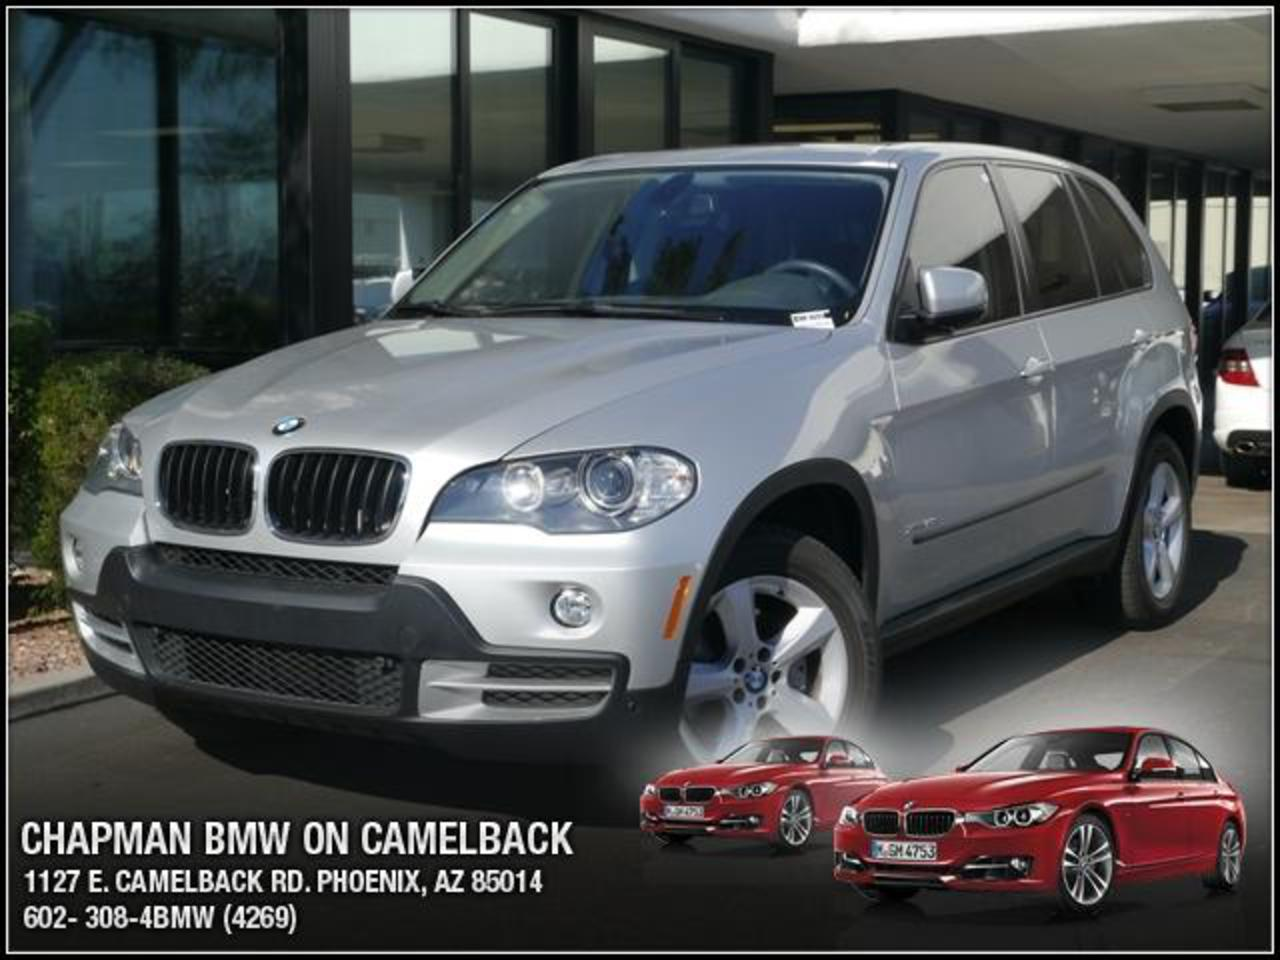 2010 BMW X5 30i AWD 17965 miles 1144 E Camelback 6023852286 March Madness